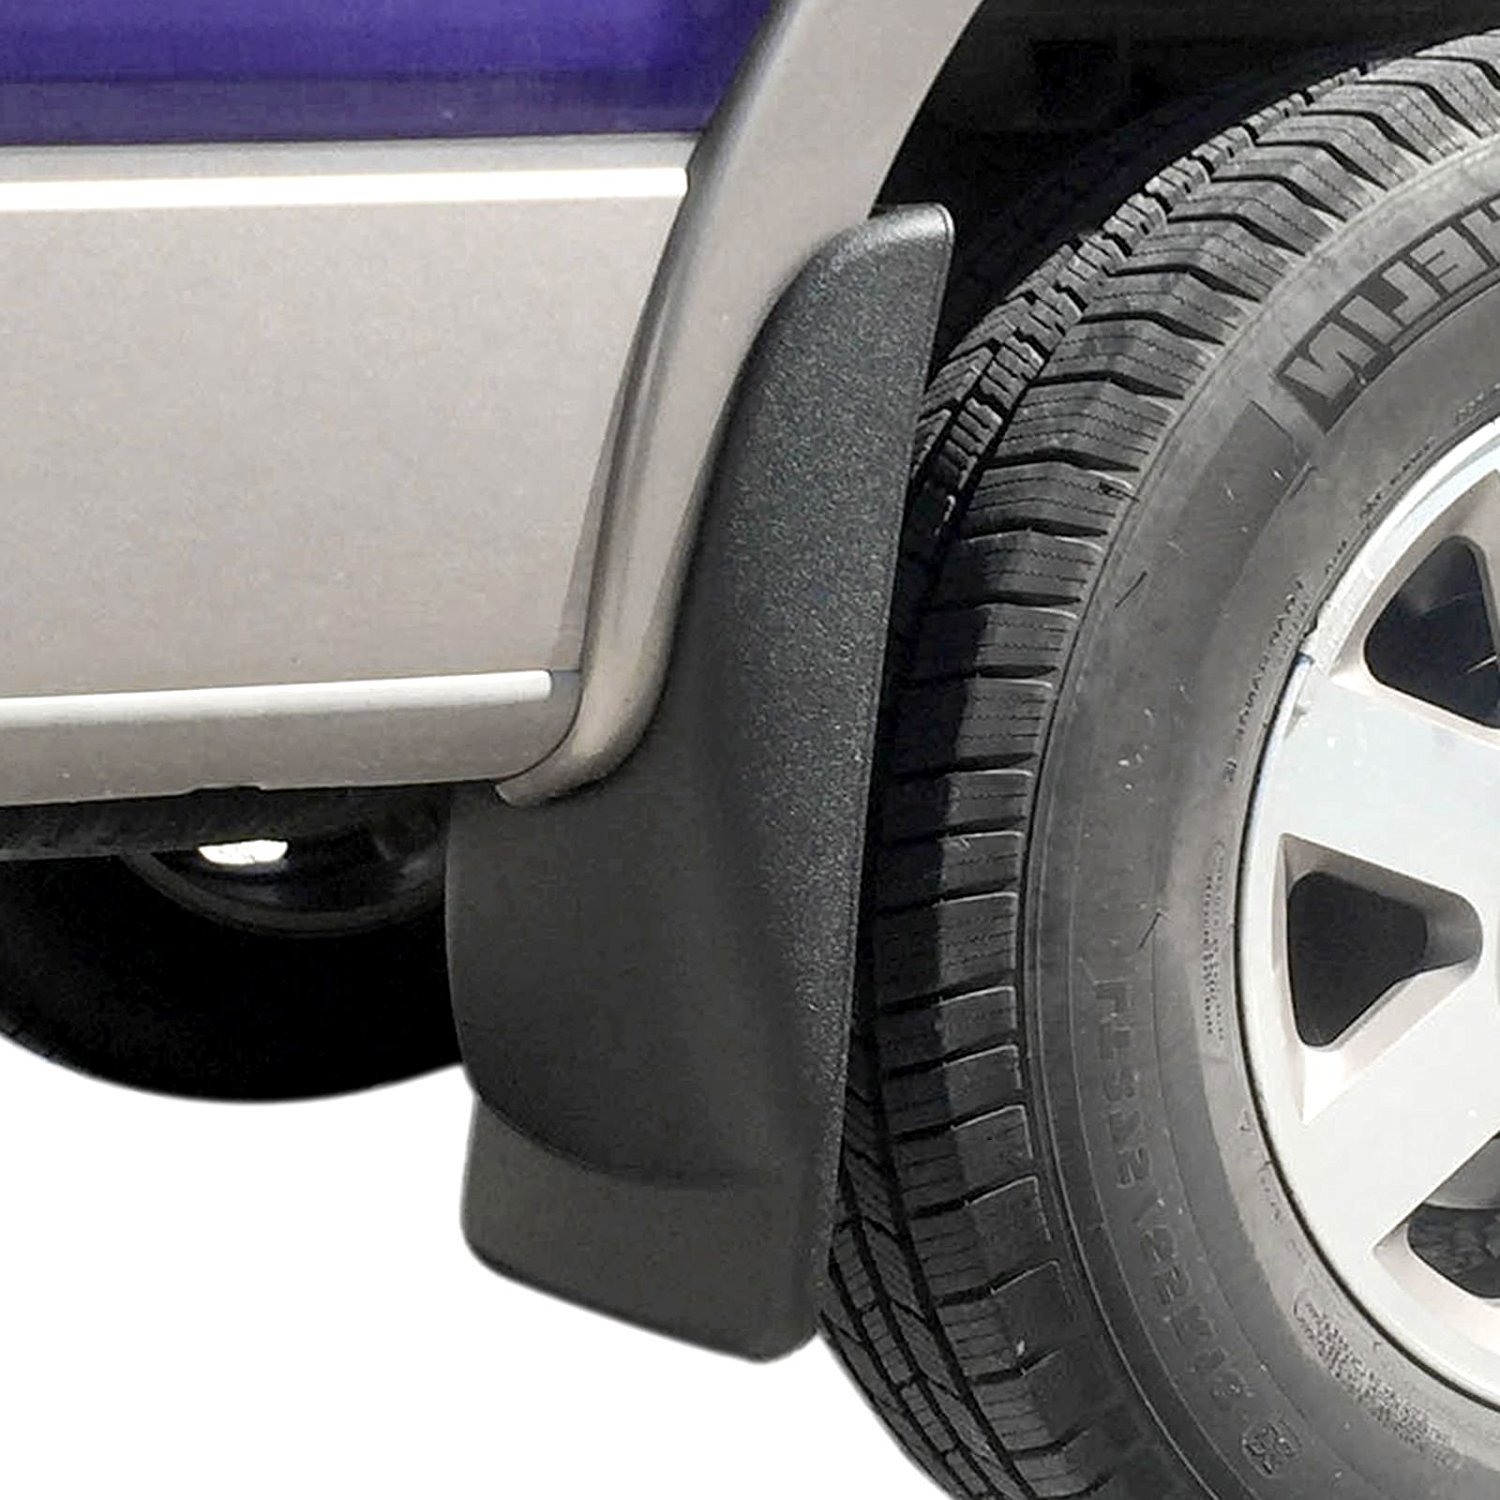 Get Quotations  C B Ford F Mud Flaps   Mud Guards Splash Guards Flare Molded  Piece Rear